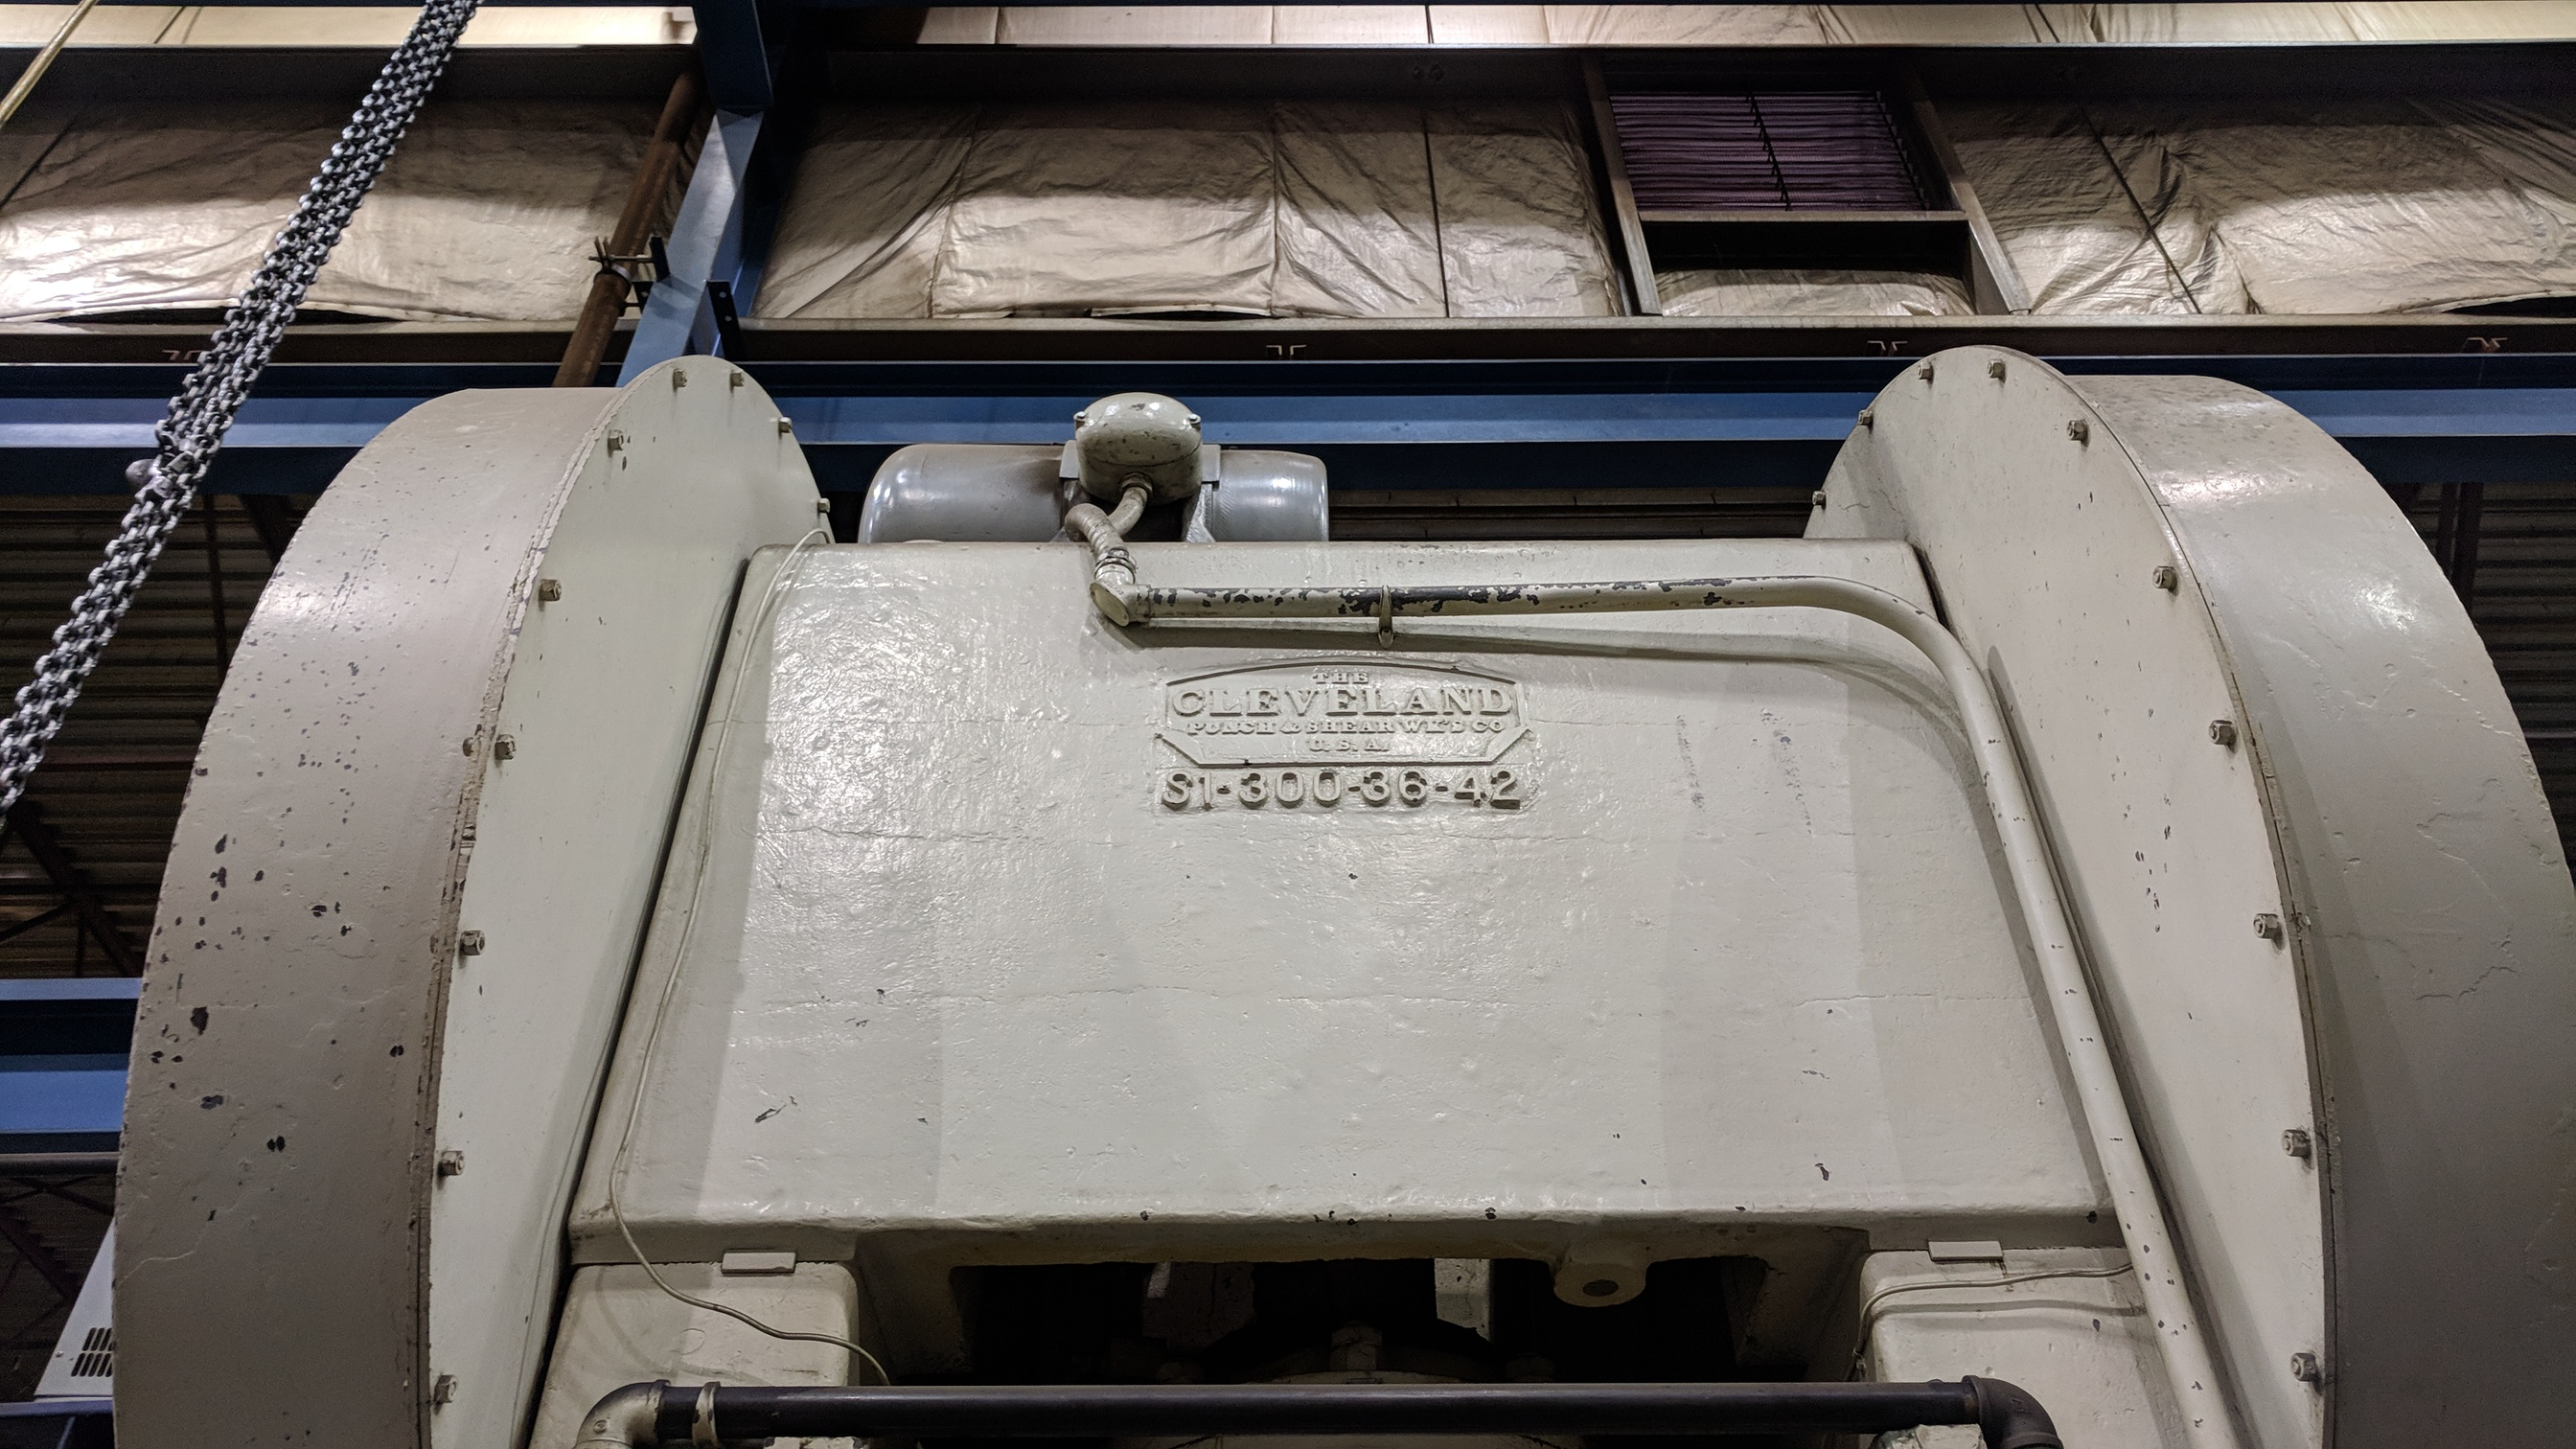 """CLEVELAND S1-300-36-42 300 TON CAPACITY STRAIGHT SIDE PRESS WITH 37""""X54"""" BED, 28""""X50"""" RAM, 30"""" - Image 3 of 9"""